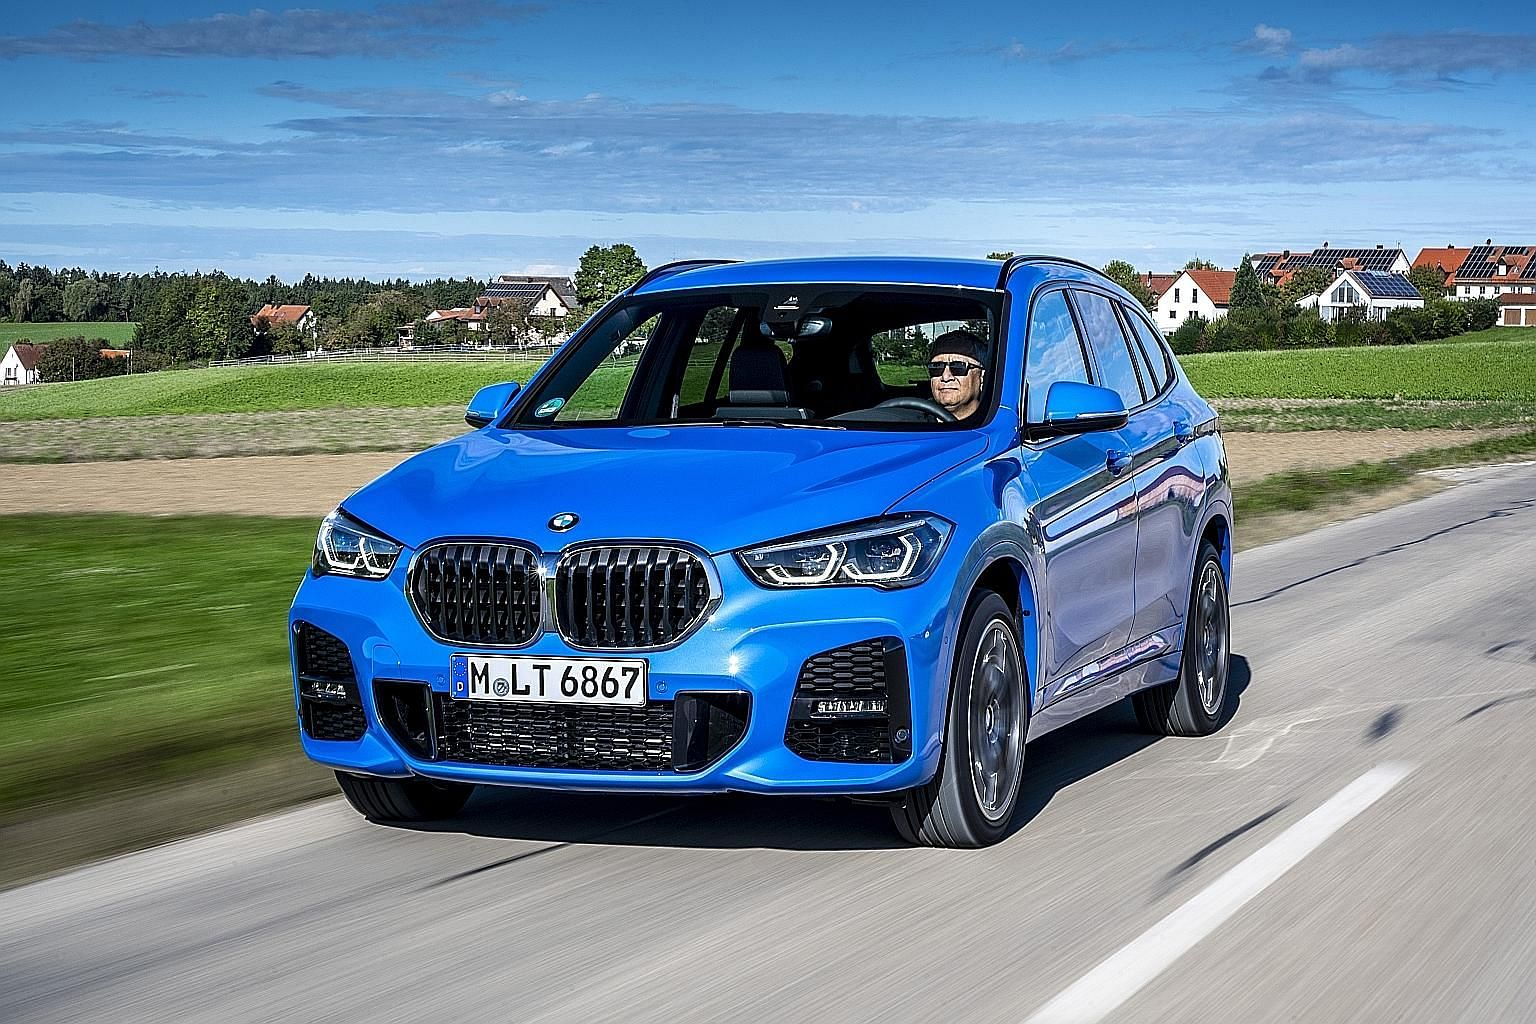 The BMW X1 drives well with little body roll for an SUV and the steering is meaty with sufficient feedback.